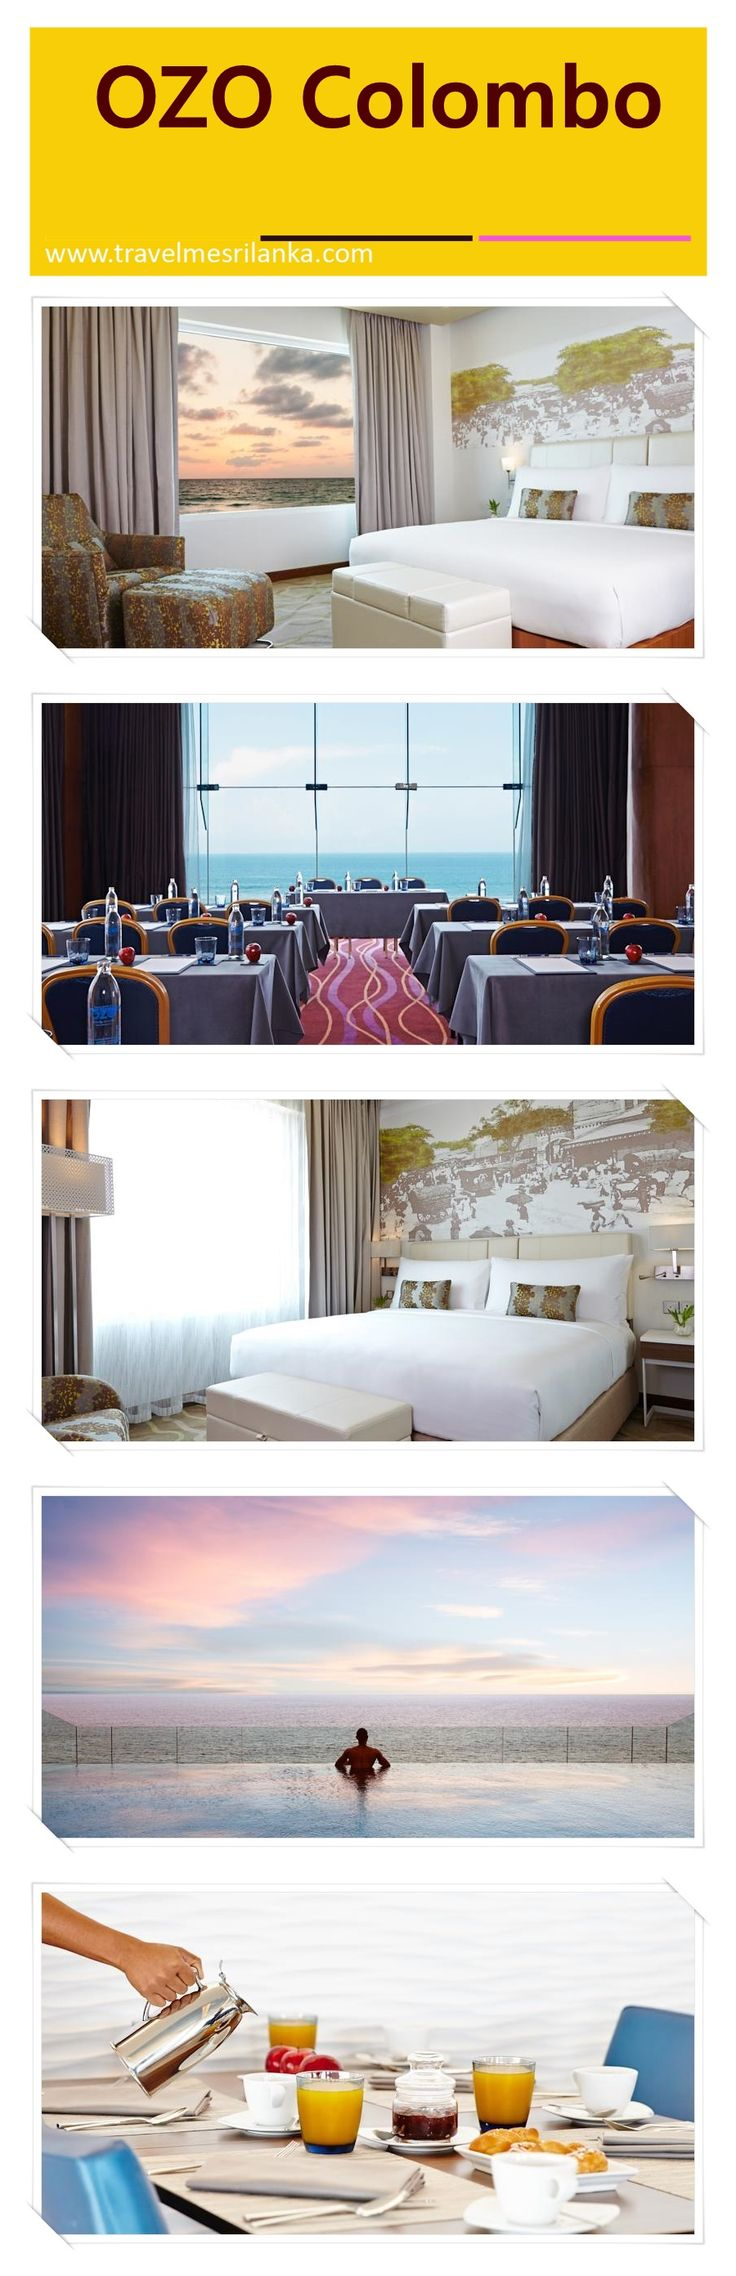 In one word OZO Colombo(★★★★) is modern luxury.This hotel in Sri Lankaoffers ample natural sunlight and sweeping sea views in some rooms.It is  33 km away from Bandaranaike International Airport and airport shuttle services can be arranged.Check the link to book it now or save it for later